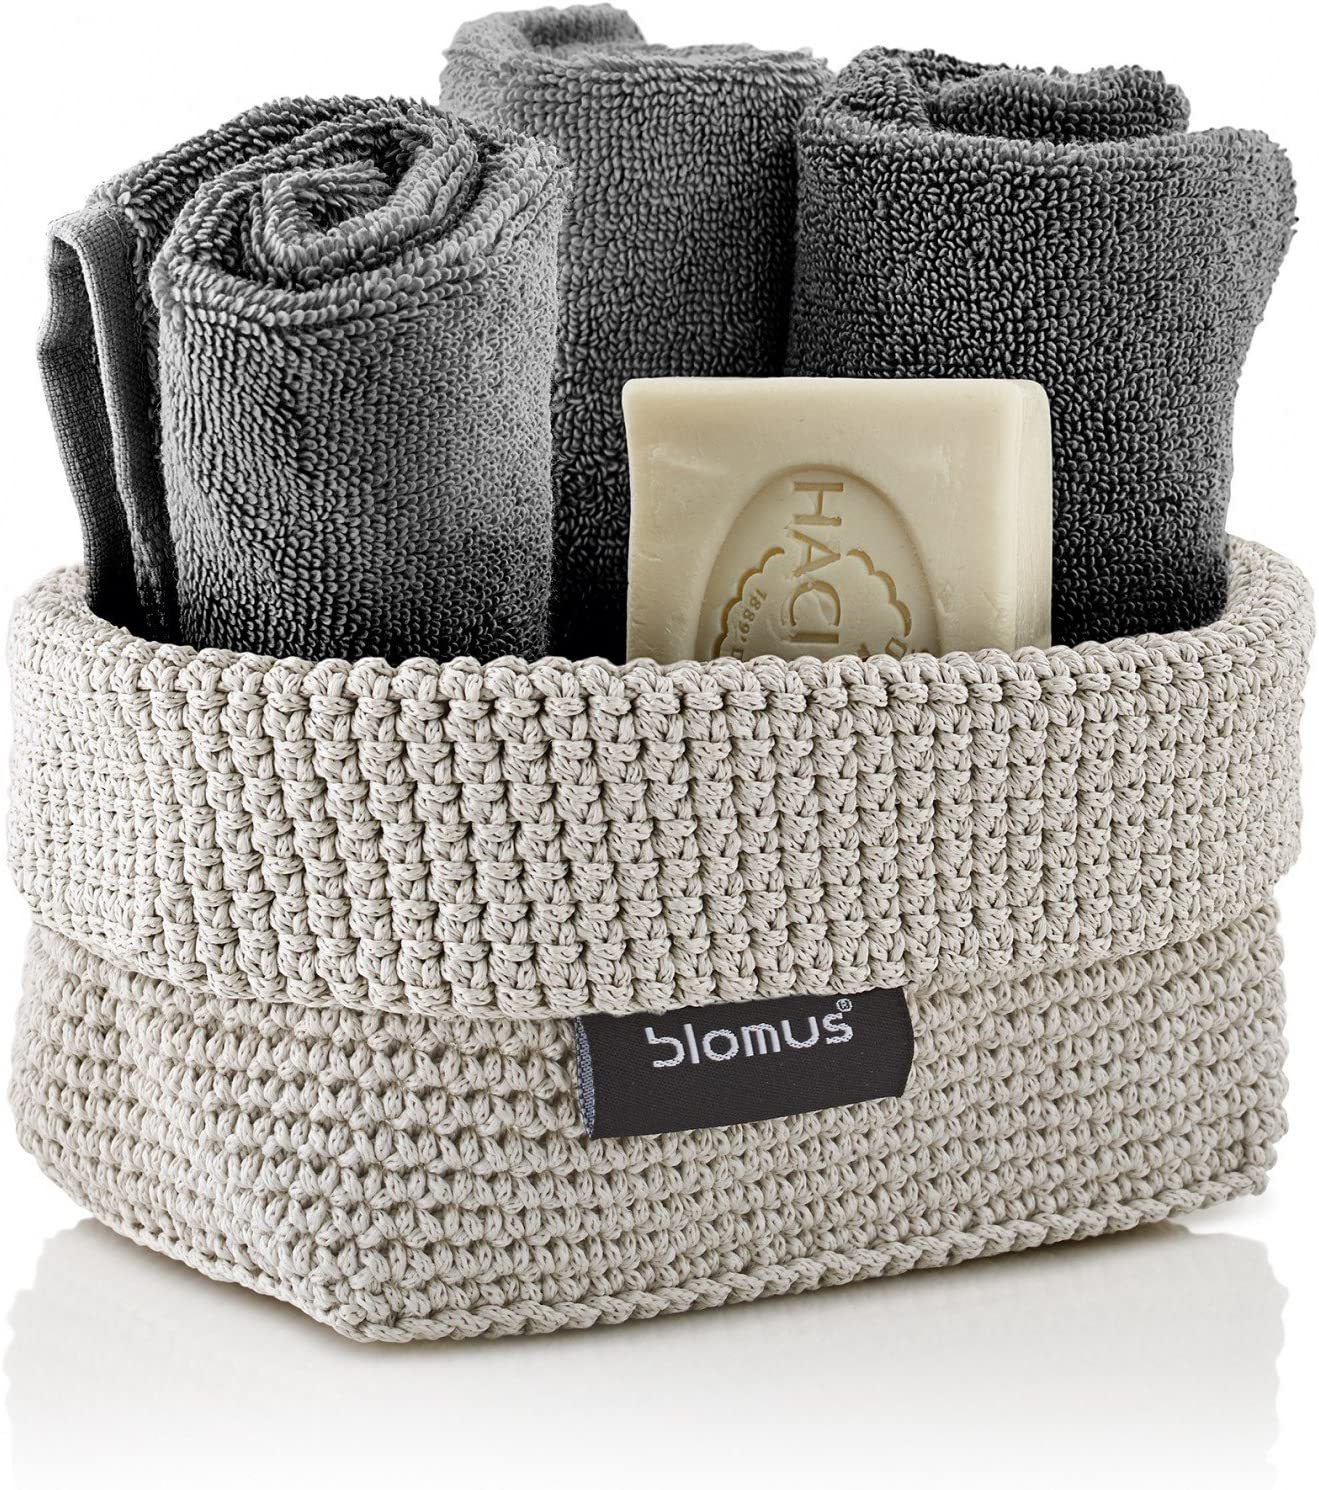 Beauty products Blomus Crochet Basket 68883 Max 67% OFF M Sand